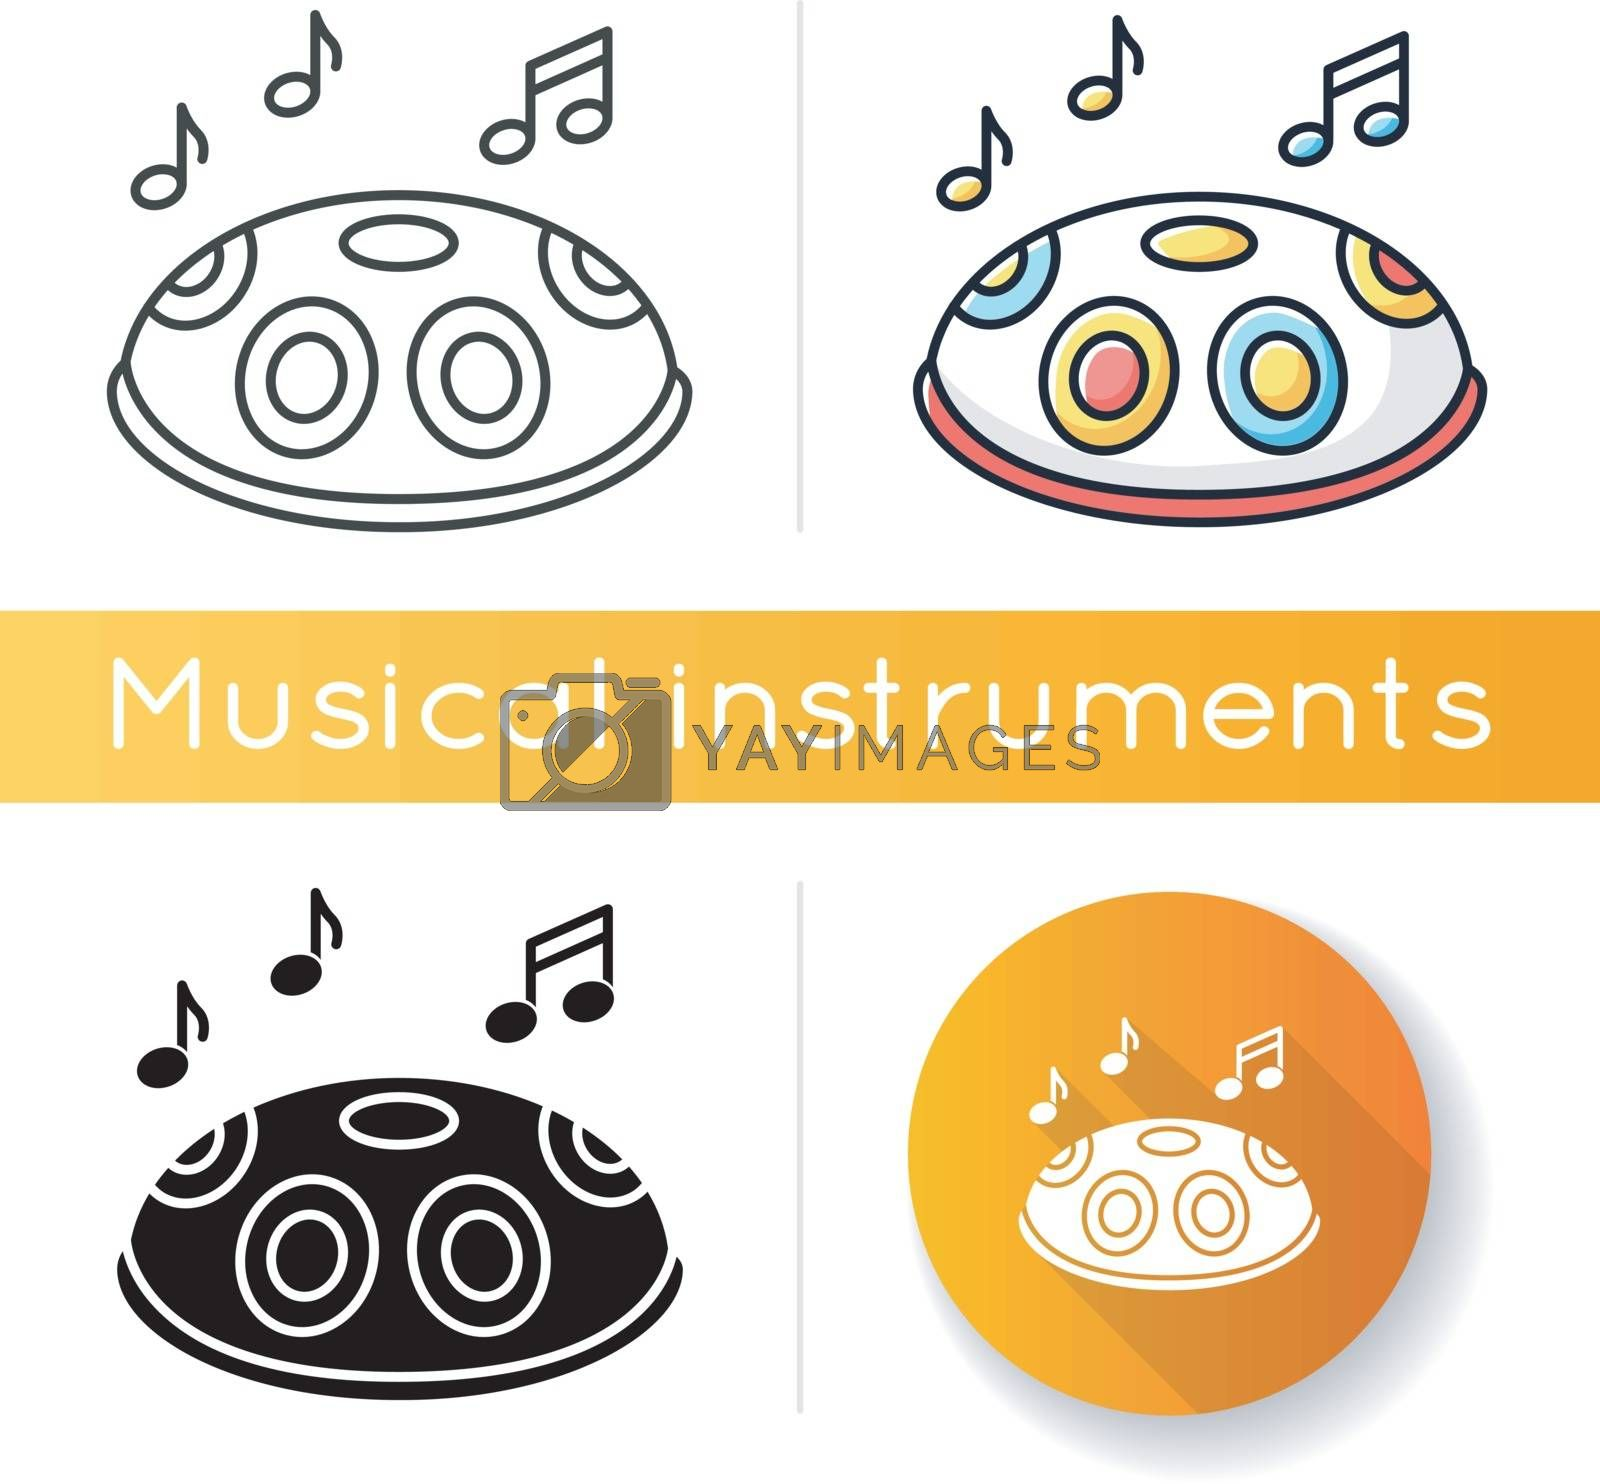 Handpan icon. Traditional musical instrument for meditation and relaxation. Perform in band with percussion. Indian sphere drum. Linear black and RGB color styles. Isolated vector illustrations